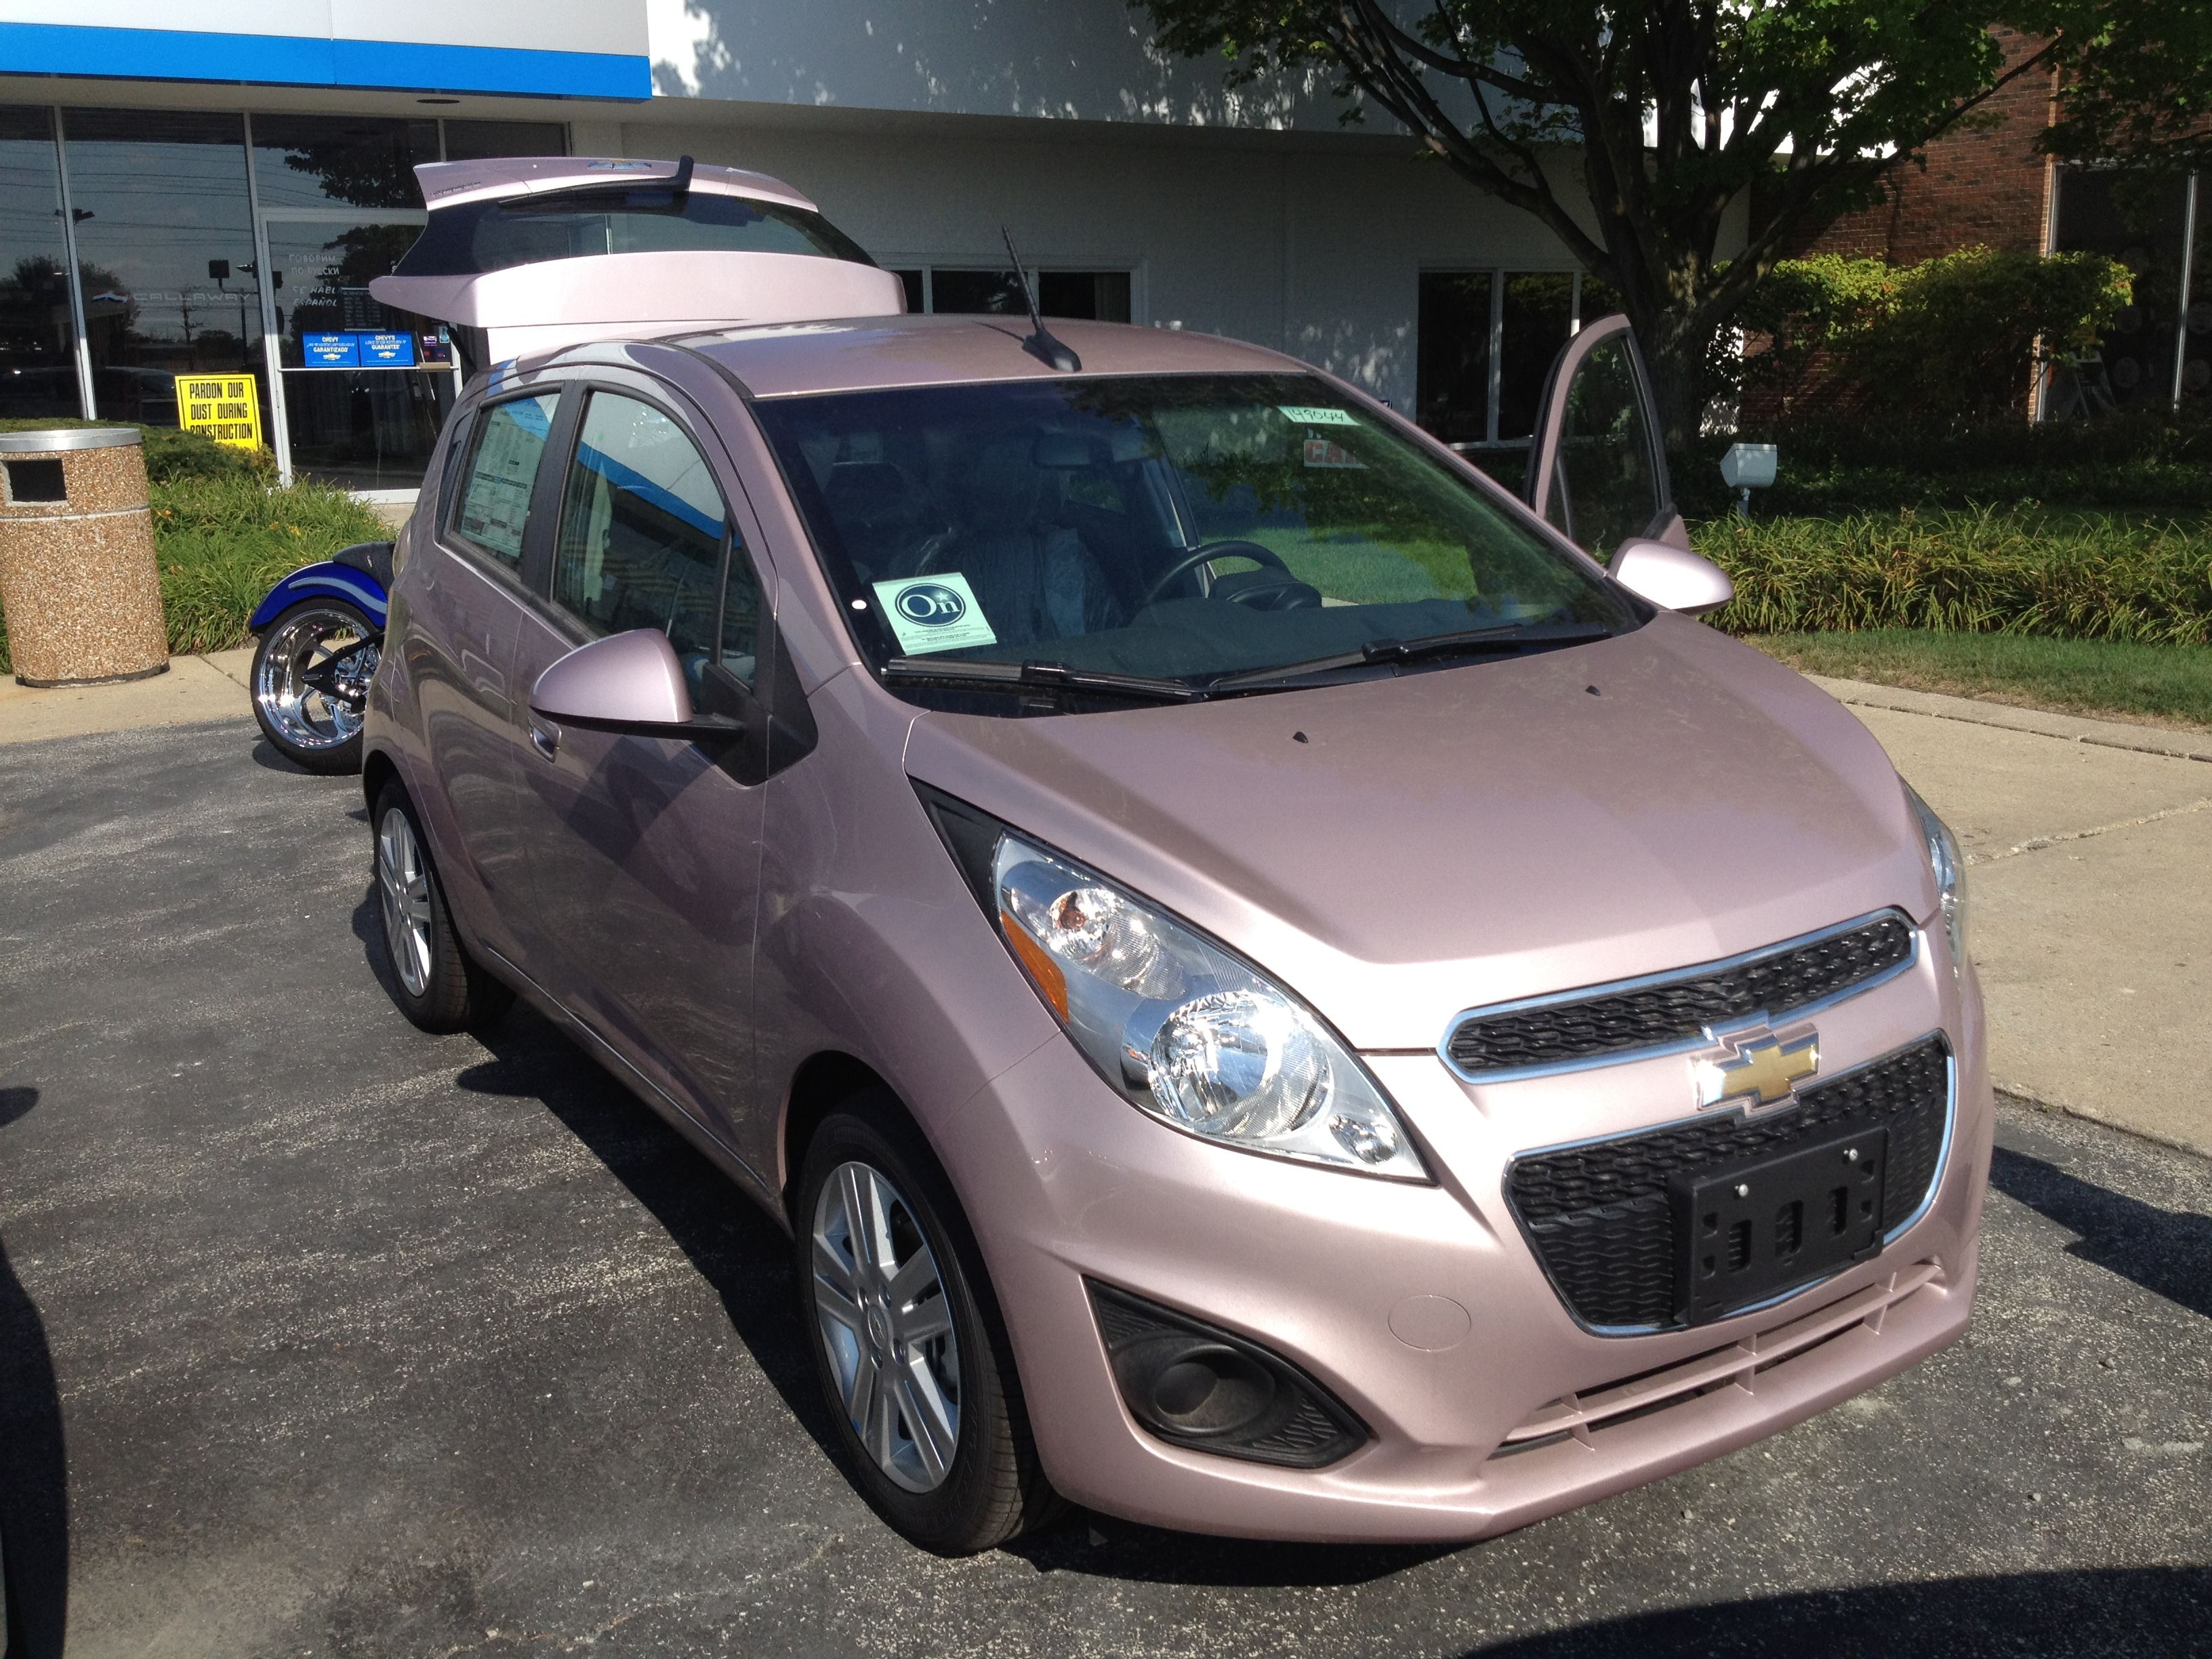 New techno pink chevy spark http www chevrolet com